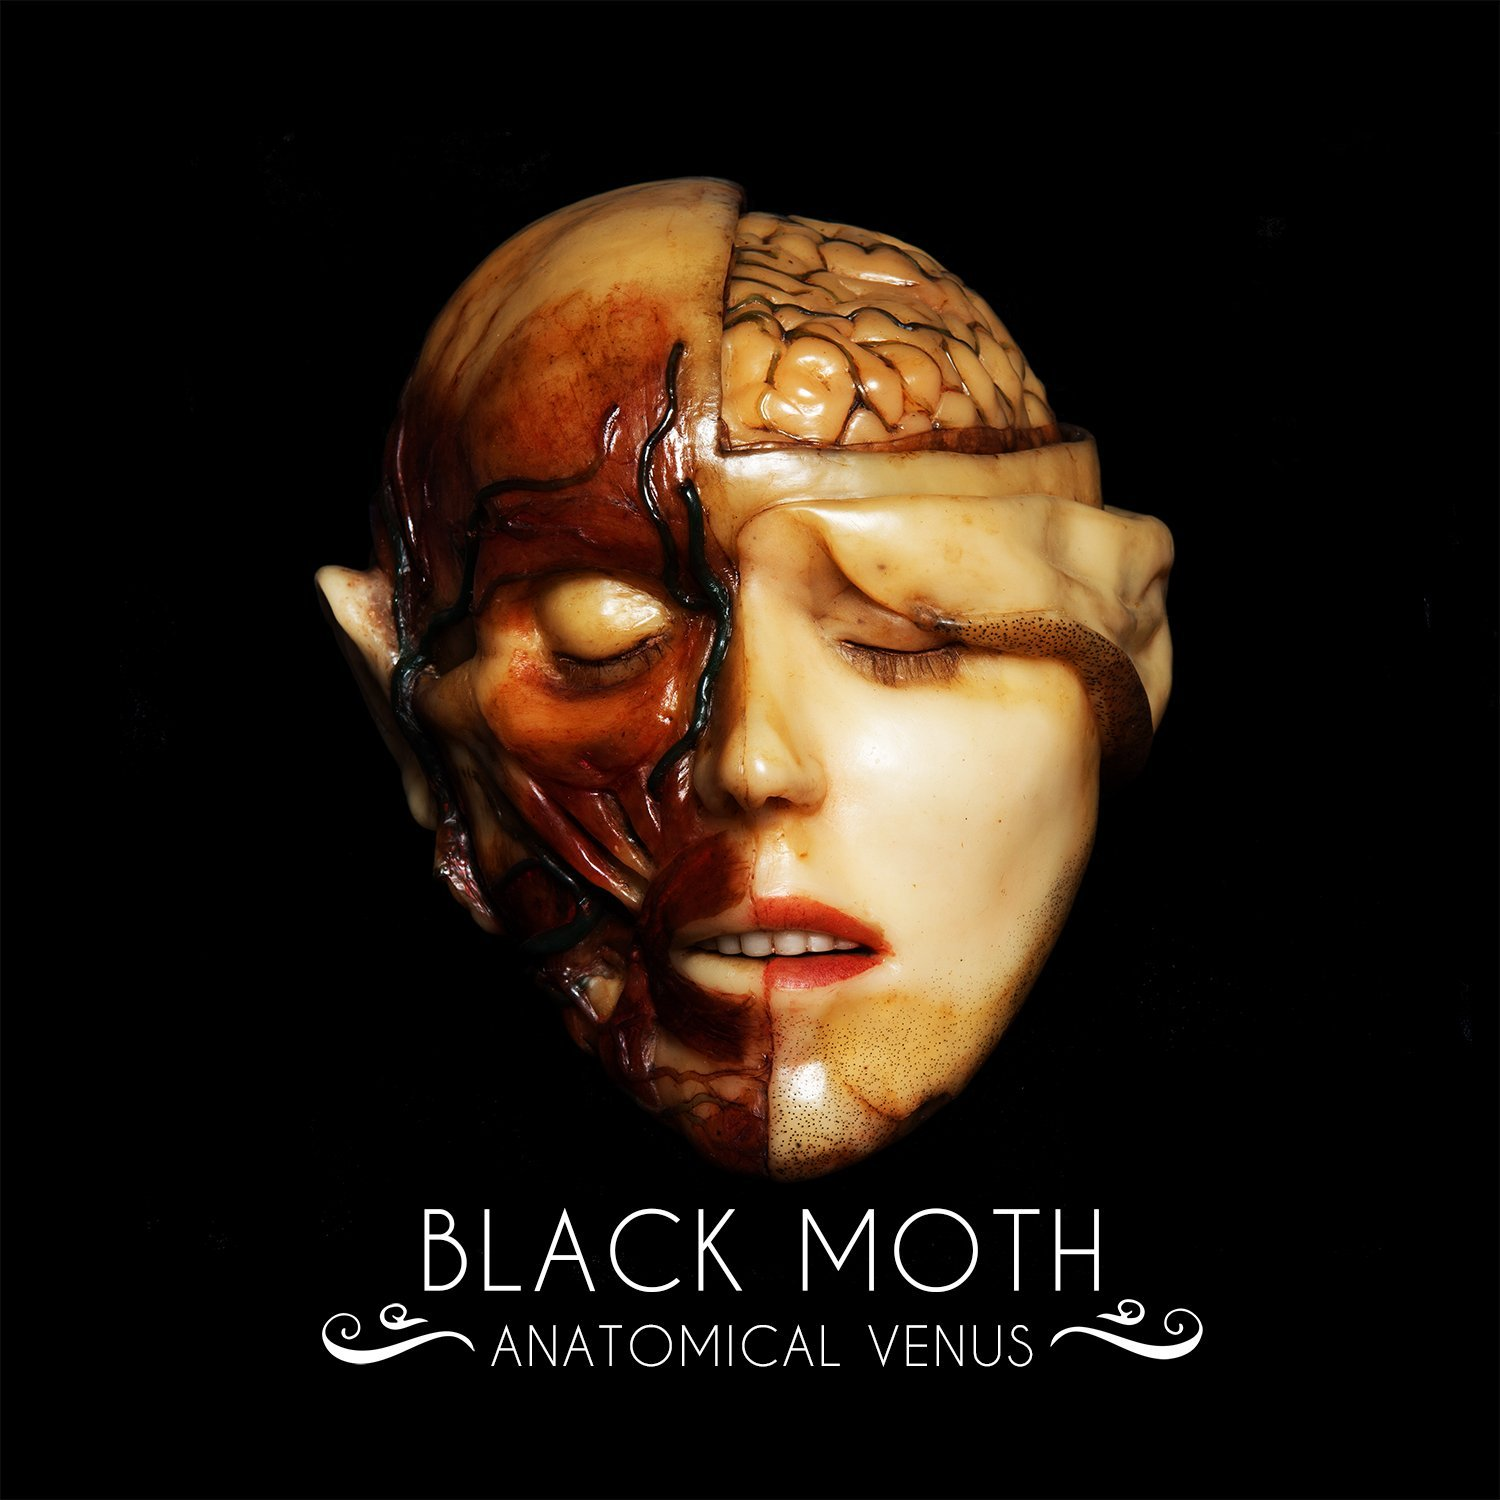 Black Moth – Anatomical Venus